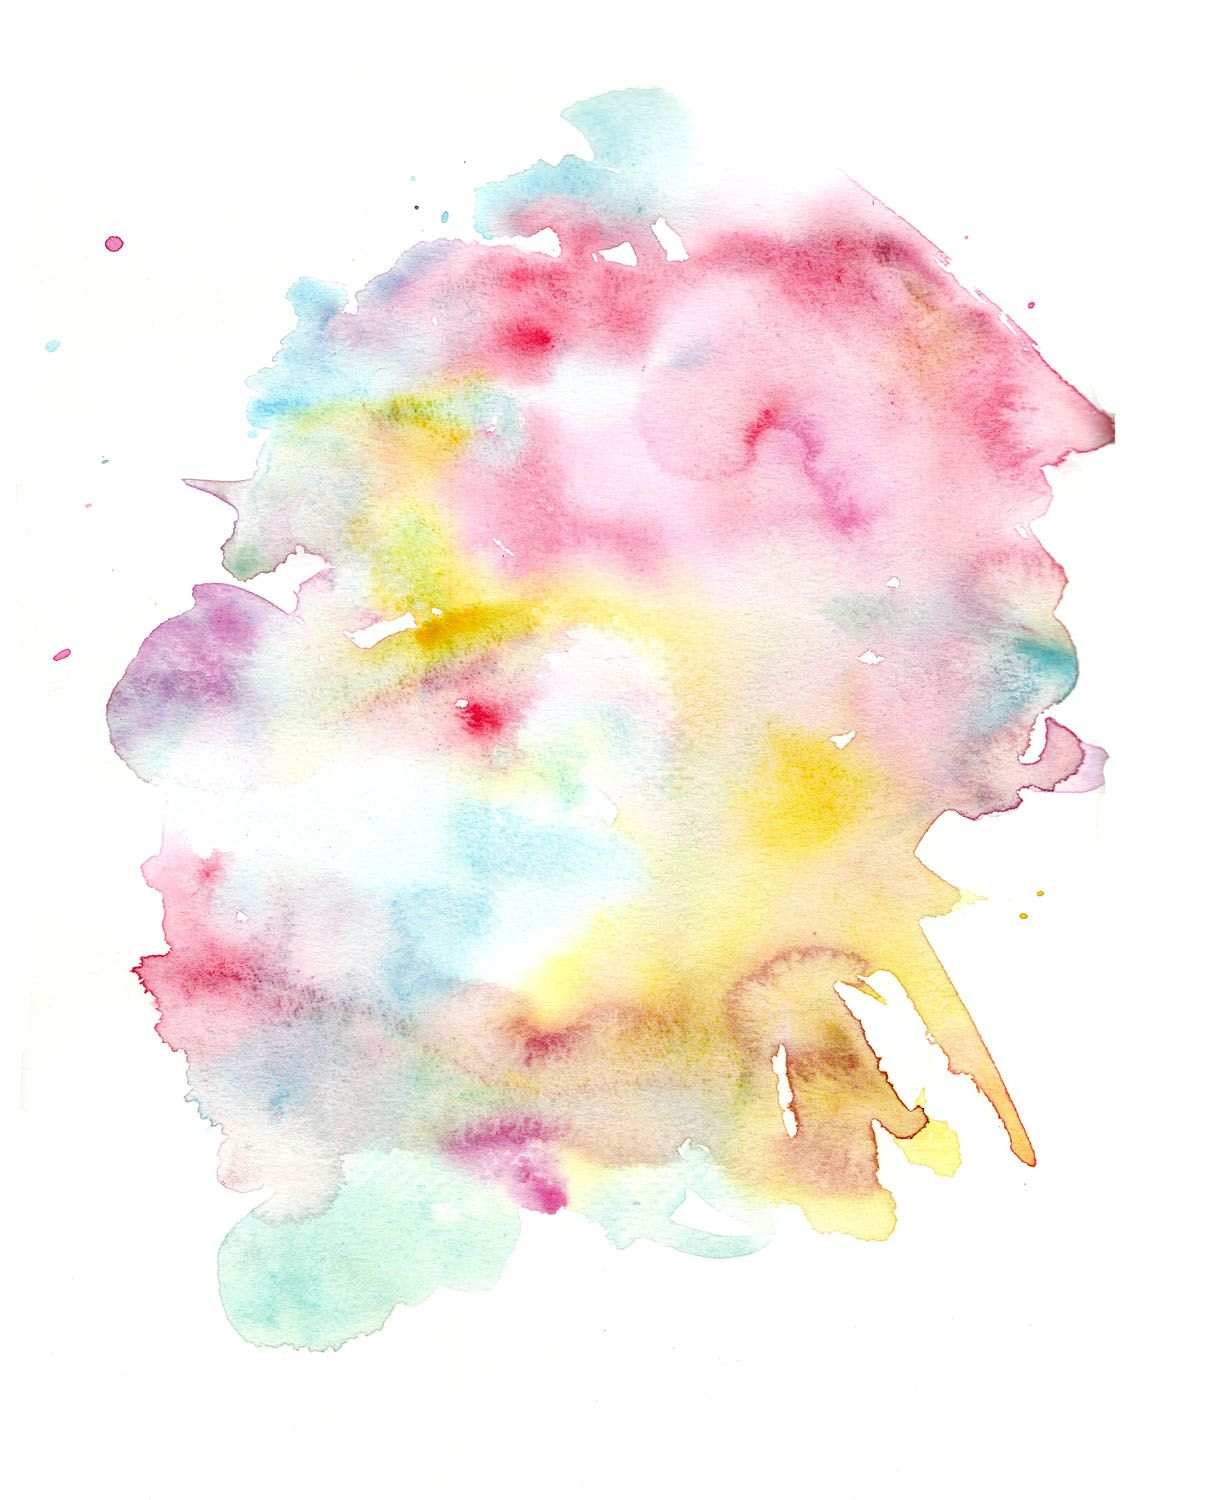 Watercolor Paint Splatter Png Watercolor Splatter Texture